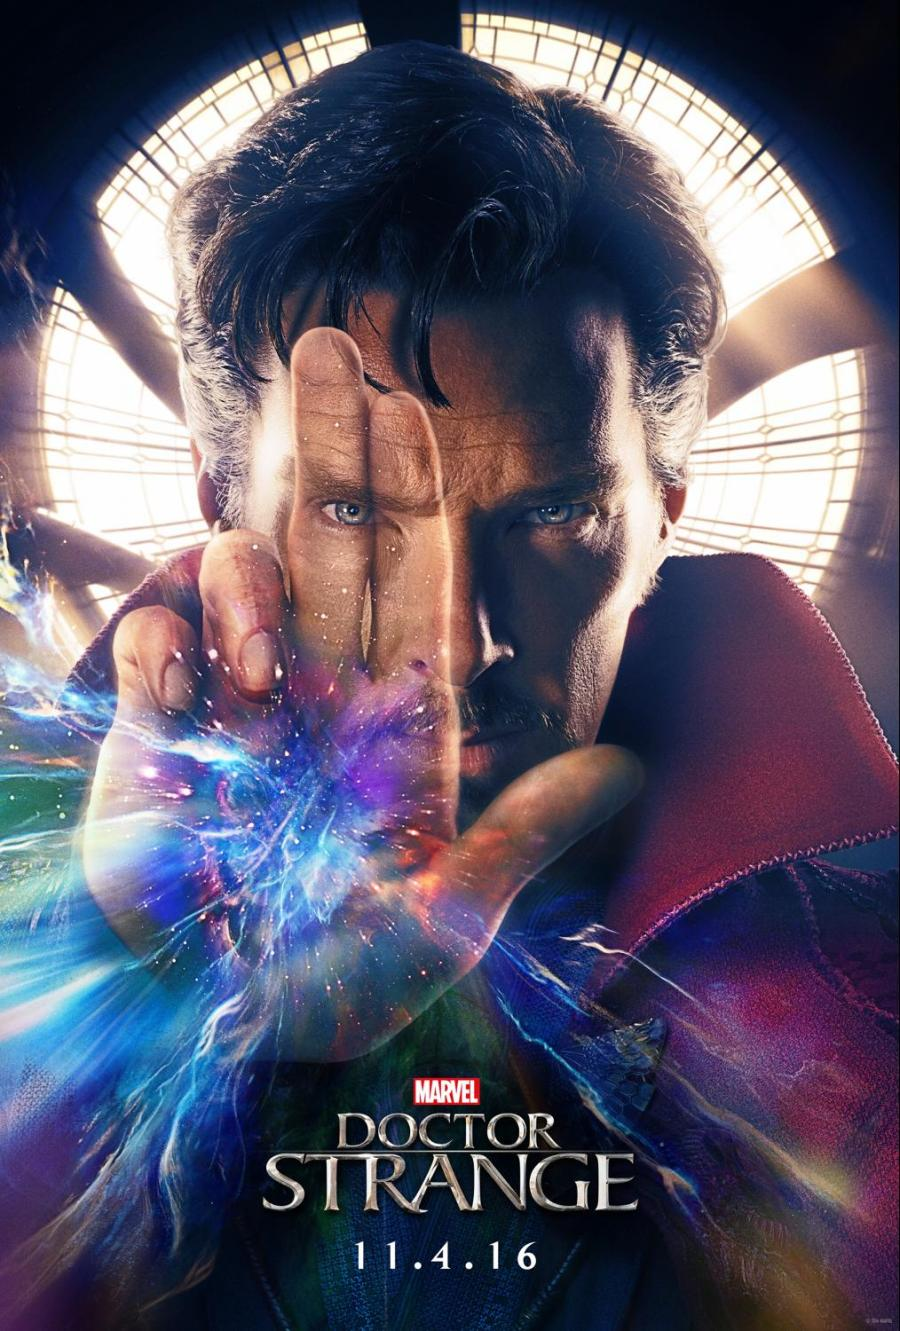 Doctor Strange: Another Marvel Masterpiece #DoctorStrange